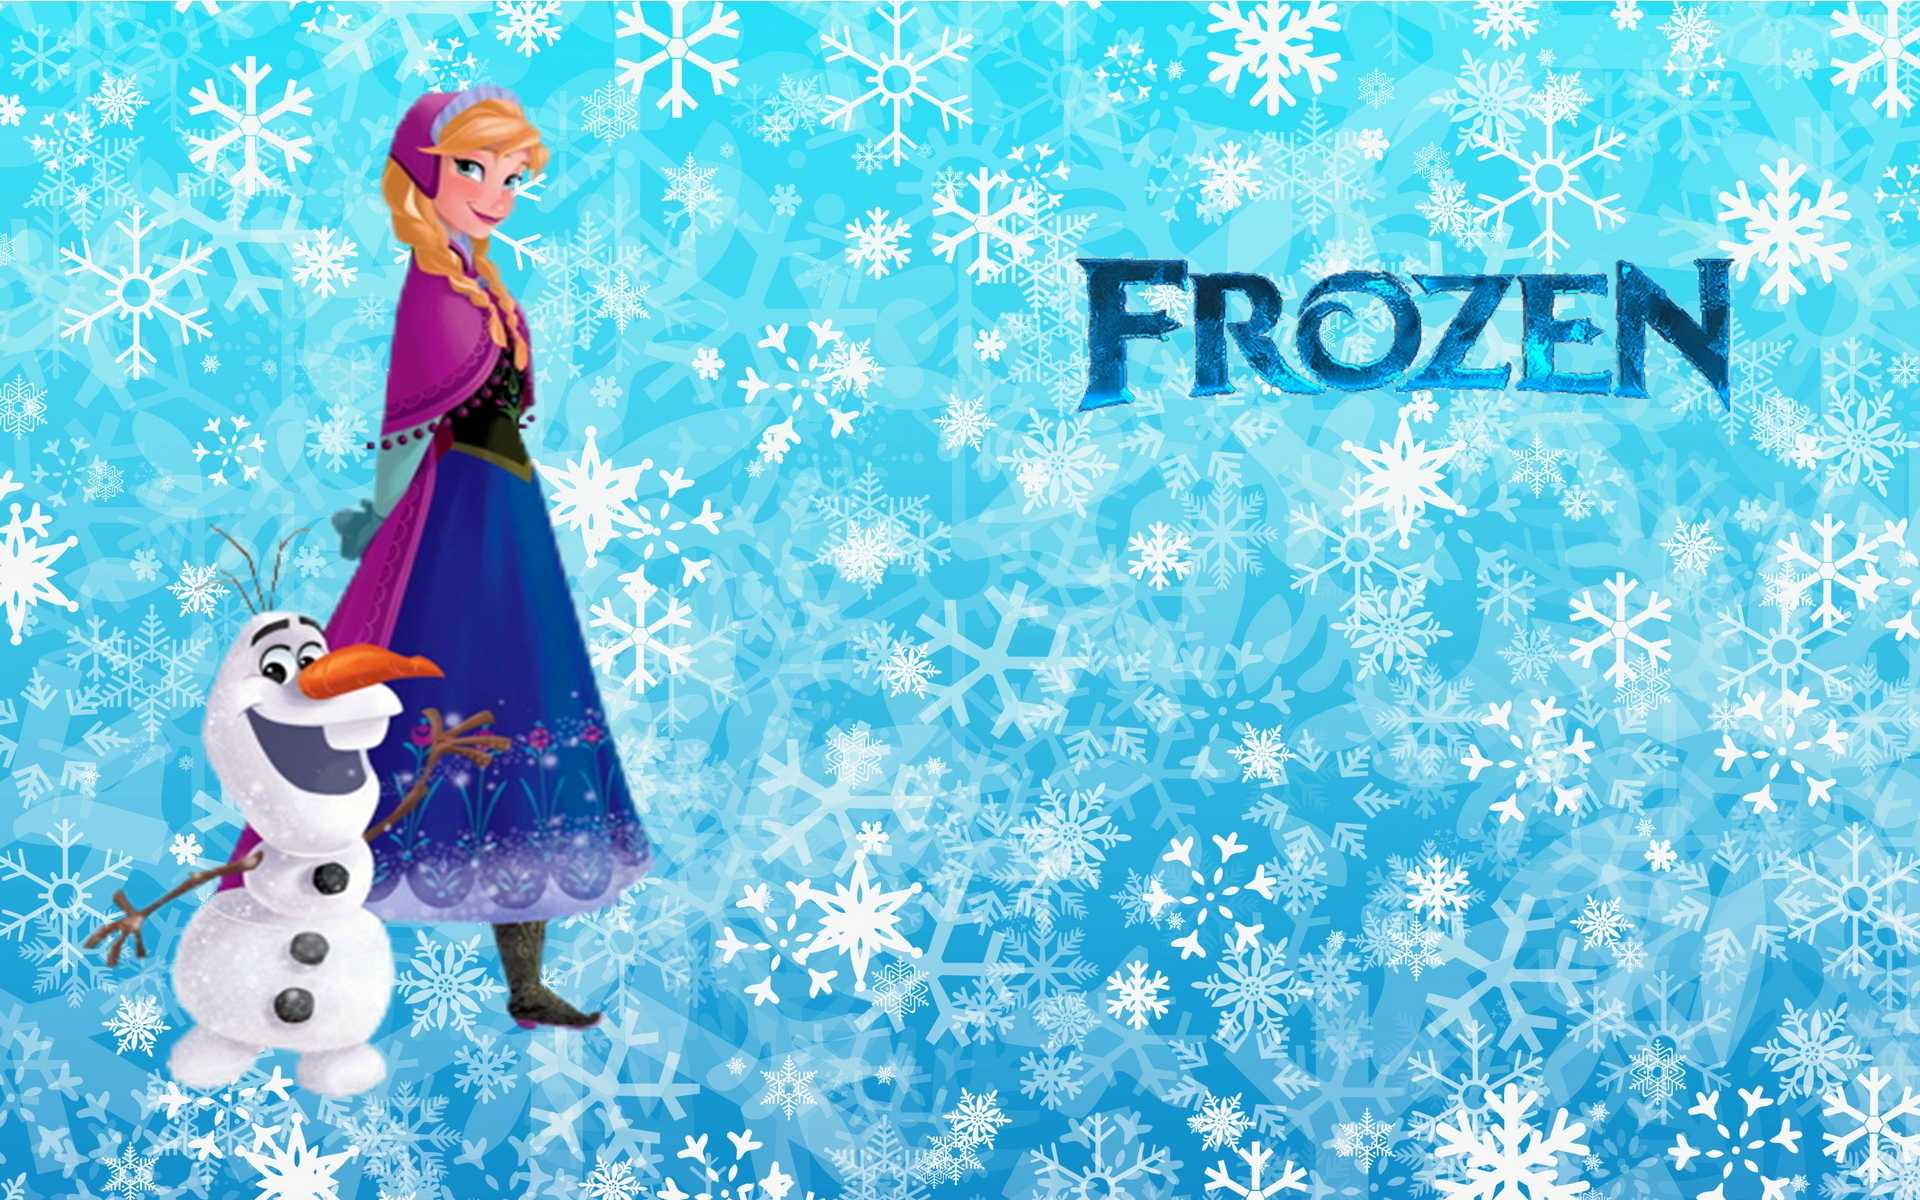 Frozen Gallery Wallpaper For Free Amazing HQFX